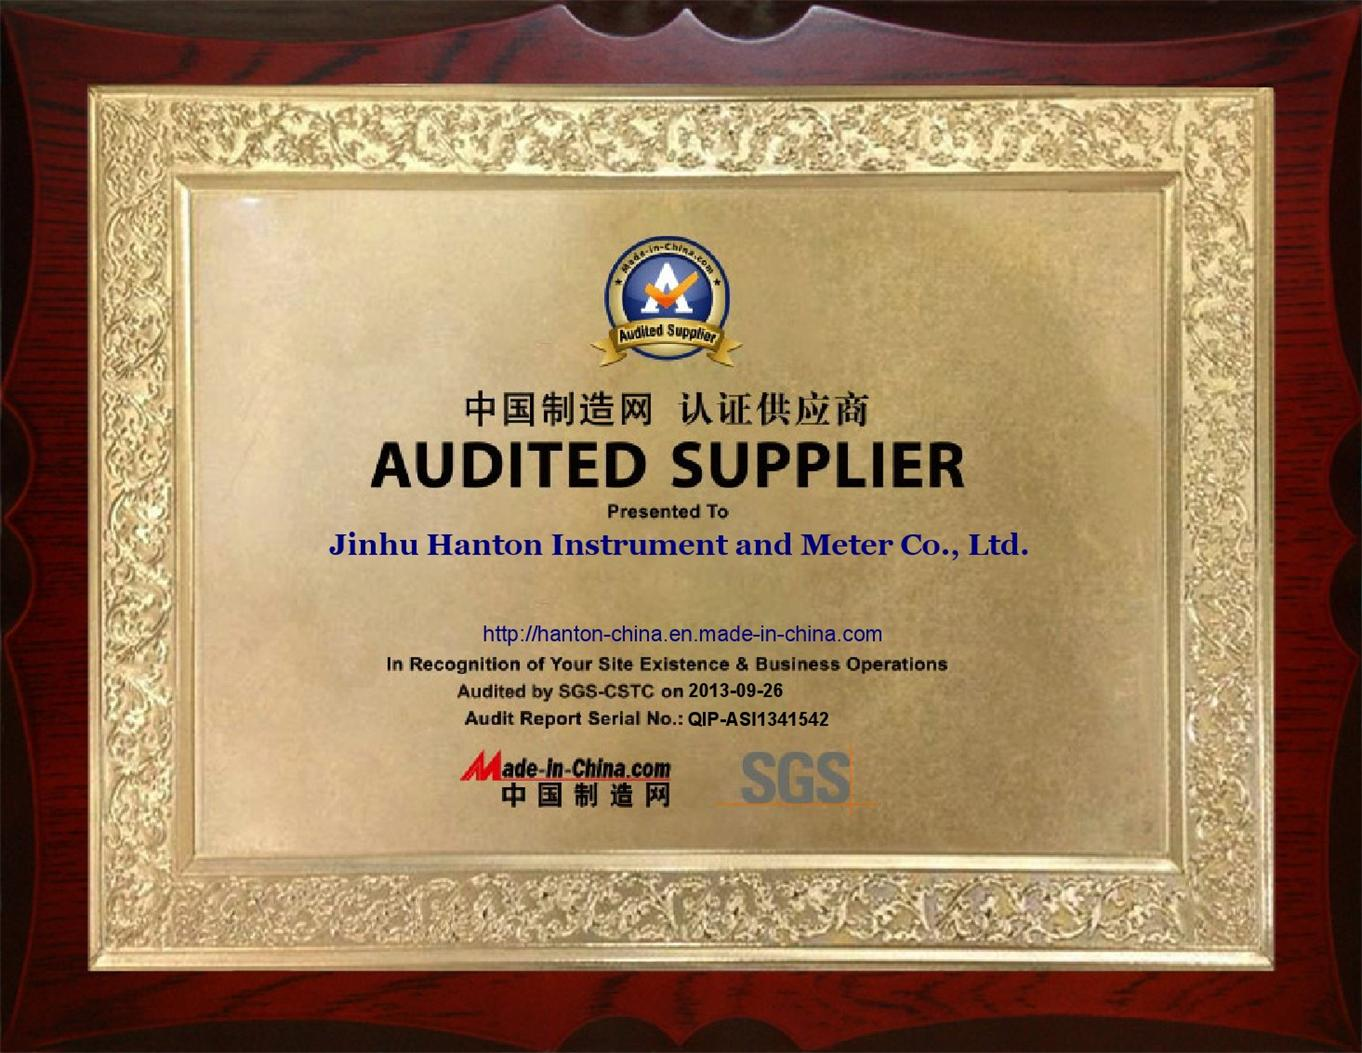 Audited Certificate made by Made-In China